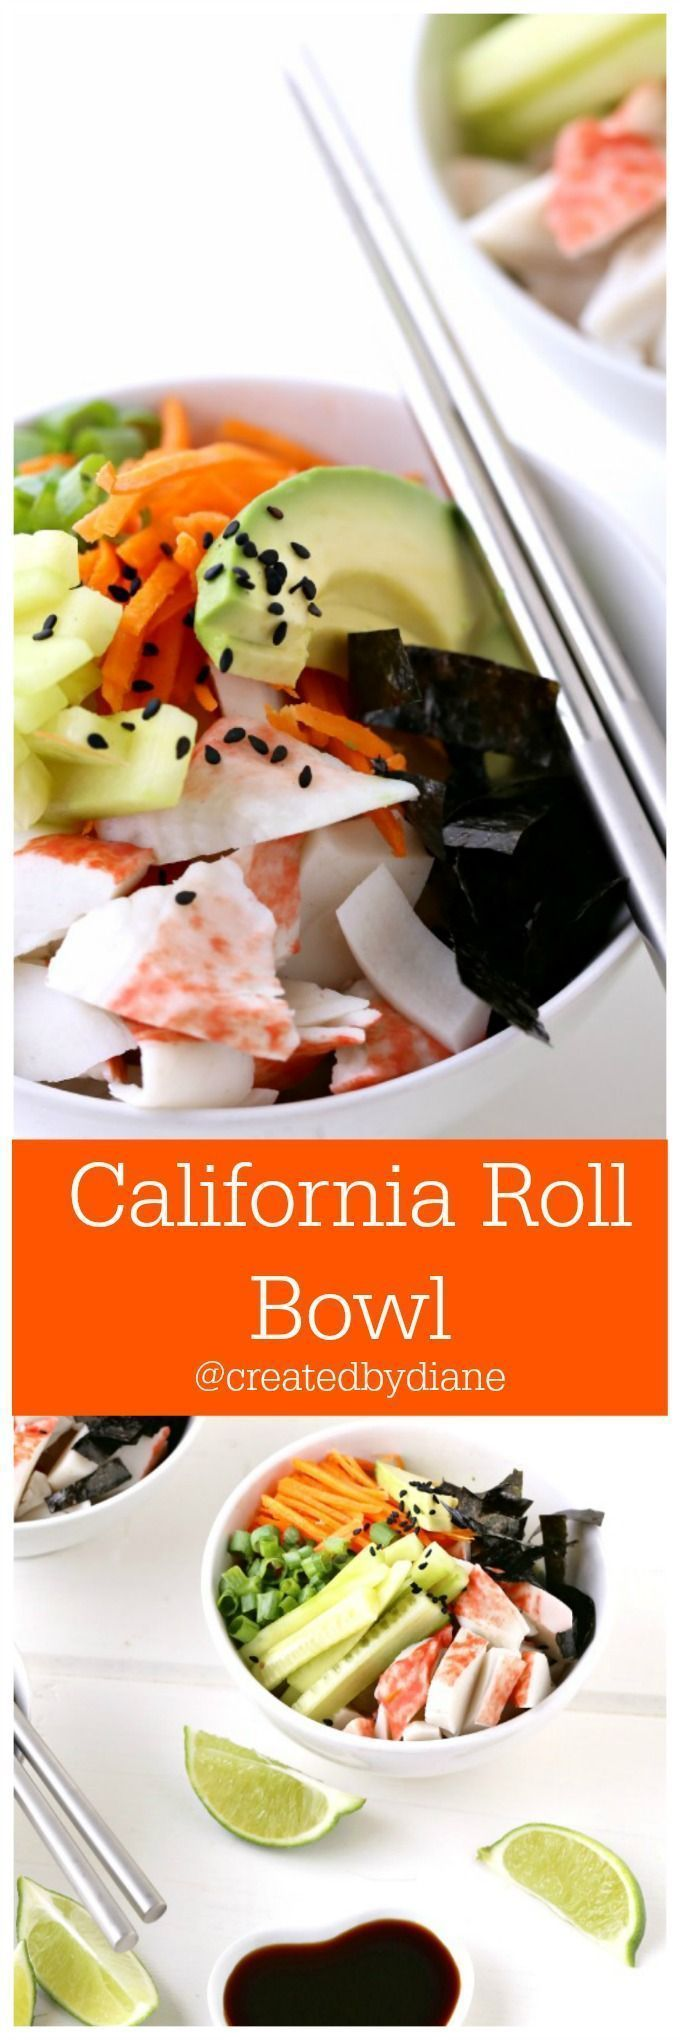 California Roll Bowl it's the perfect easiest Cali Roll to make at home /createdbydiane/